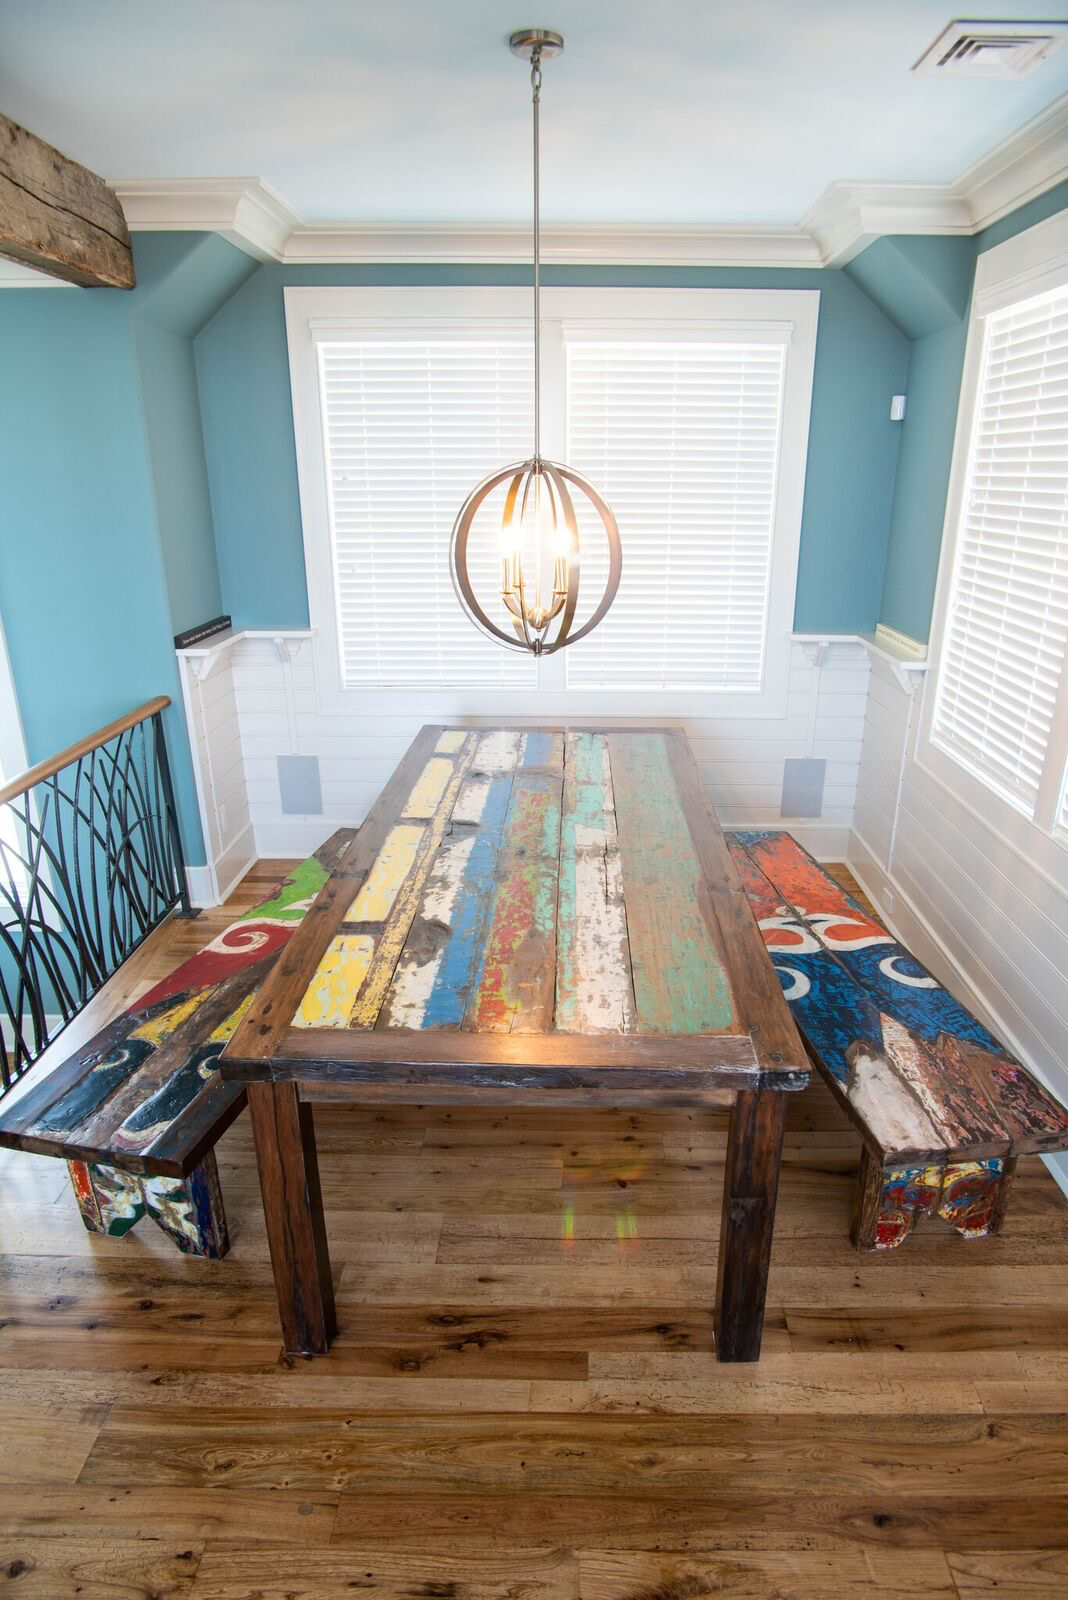 Reclaimed Wood Flooring Real Antique Wood How To Antique Wood Wood Table Reclaimed Flooring